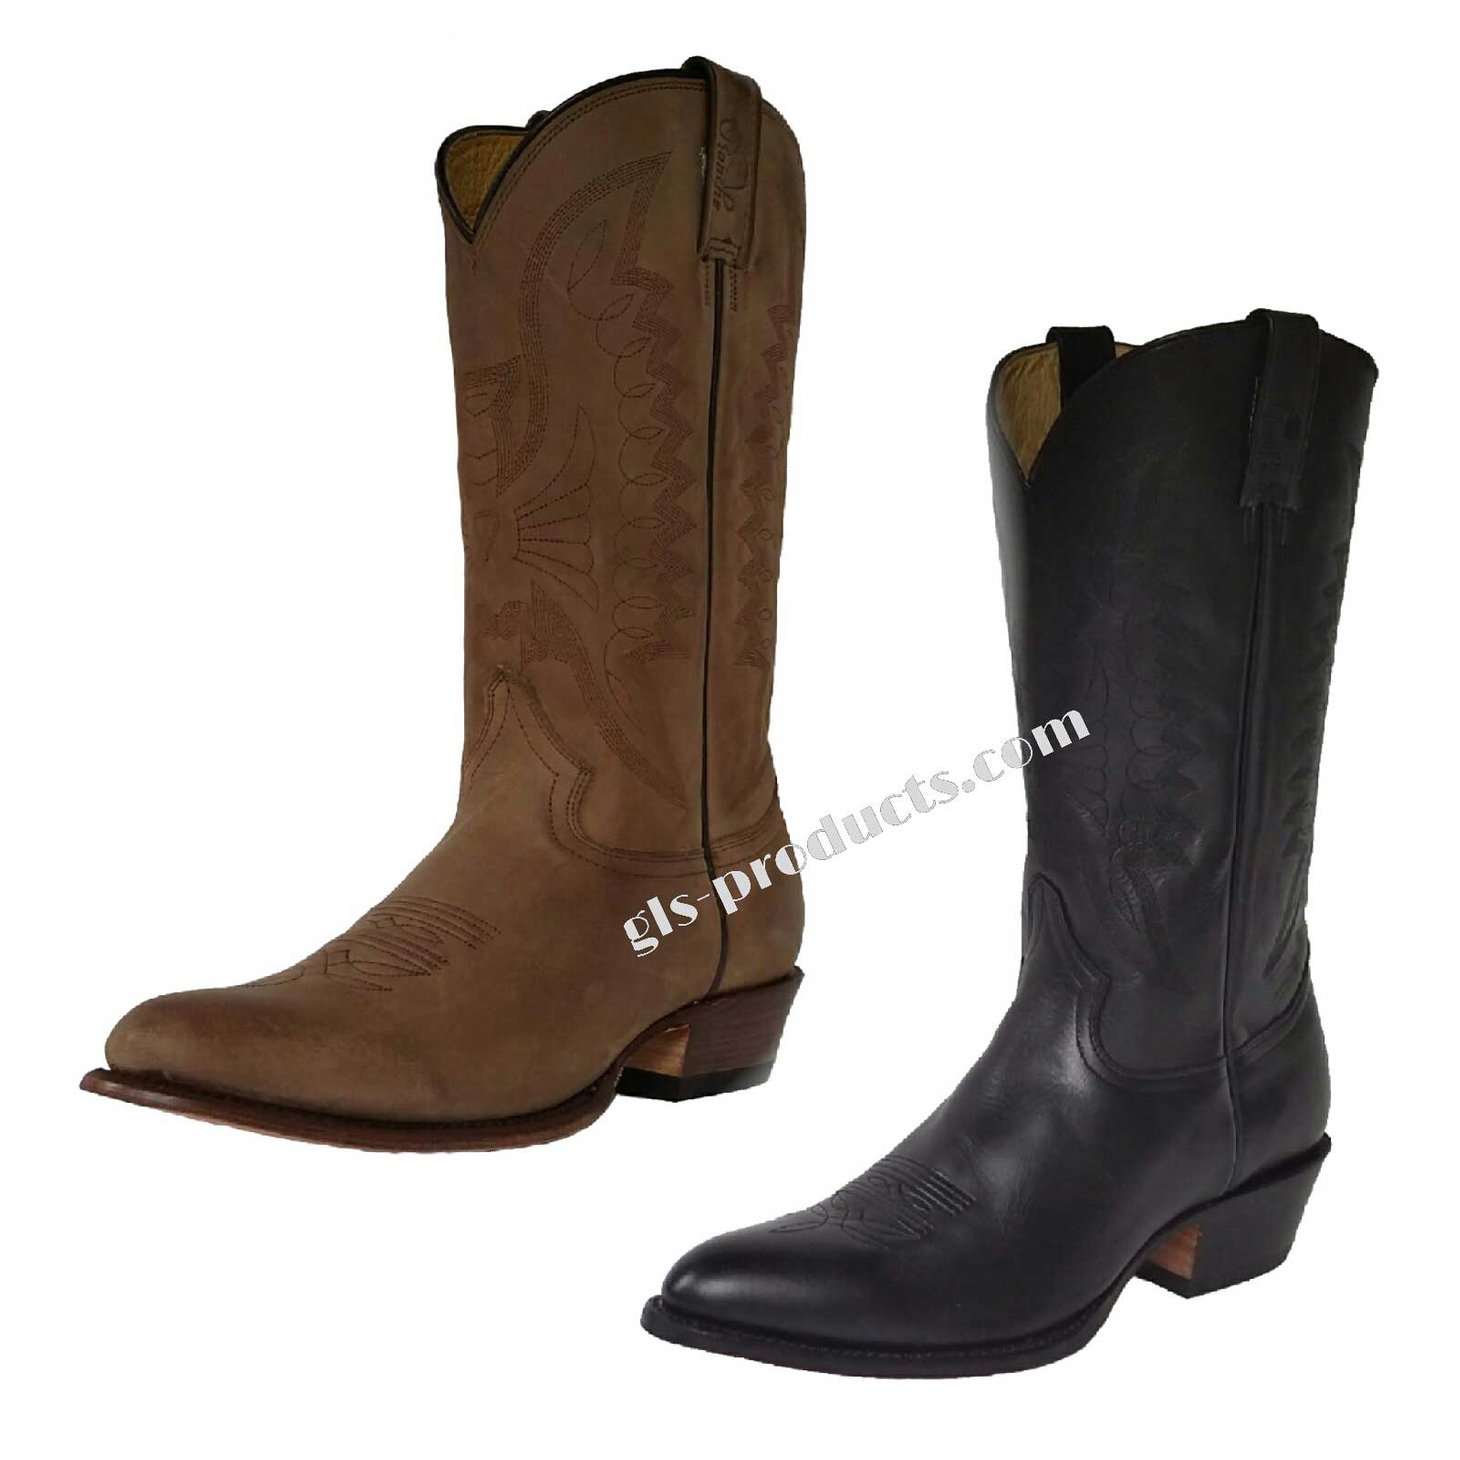 Rancho 2058 Western Boots, Cowboy Boots – Picture 1